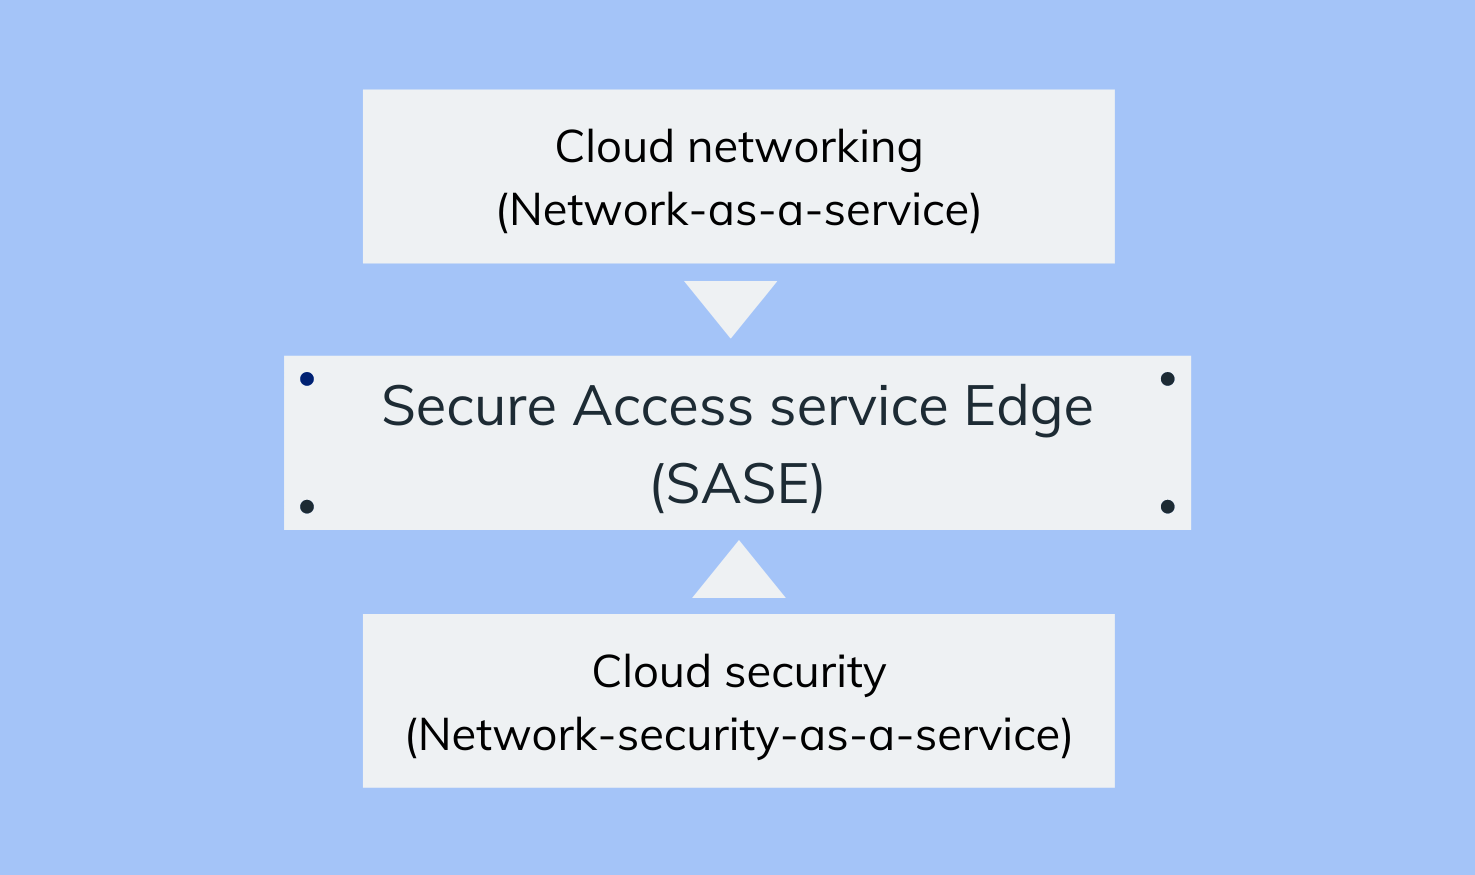 What is SASE? (Secure access service edge)